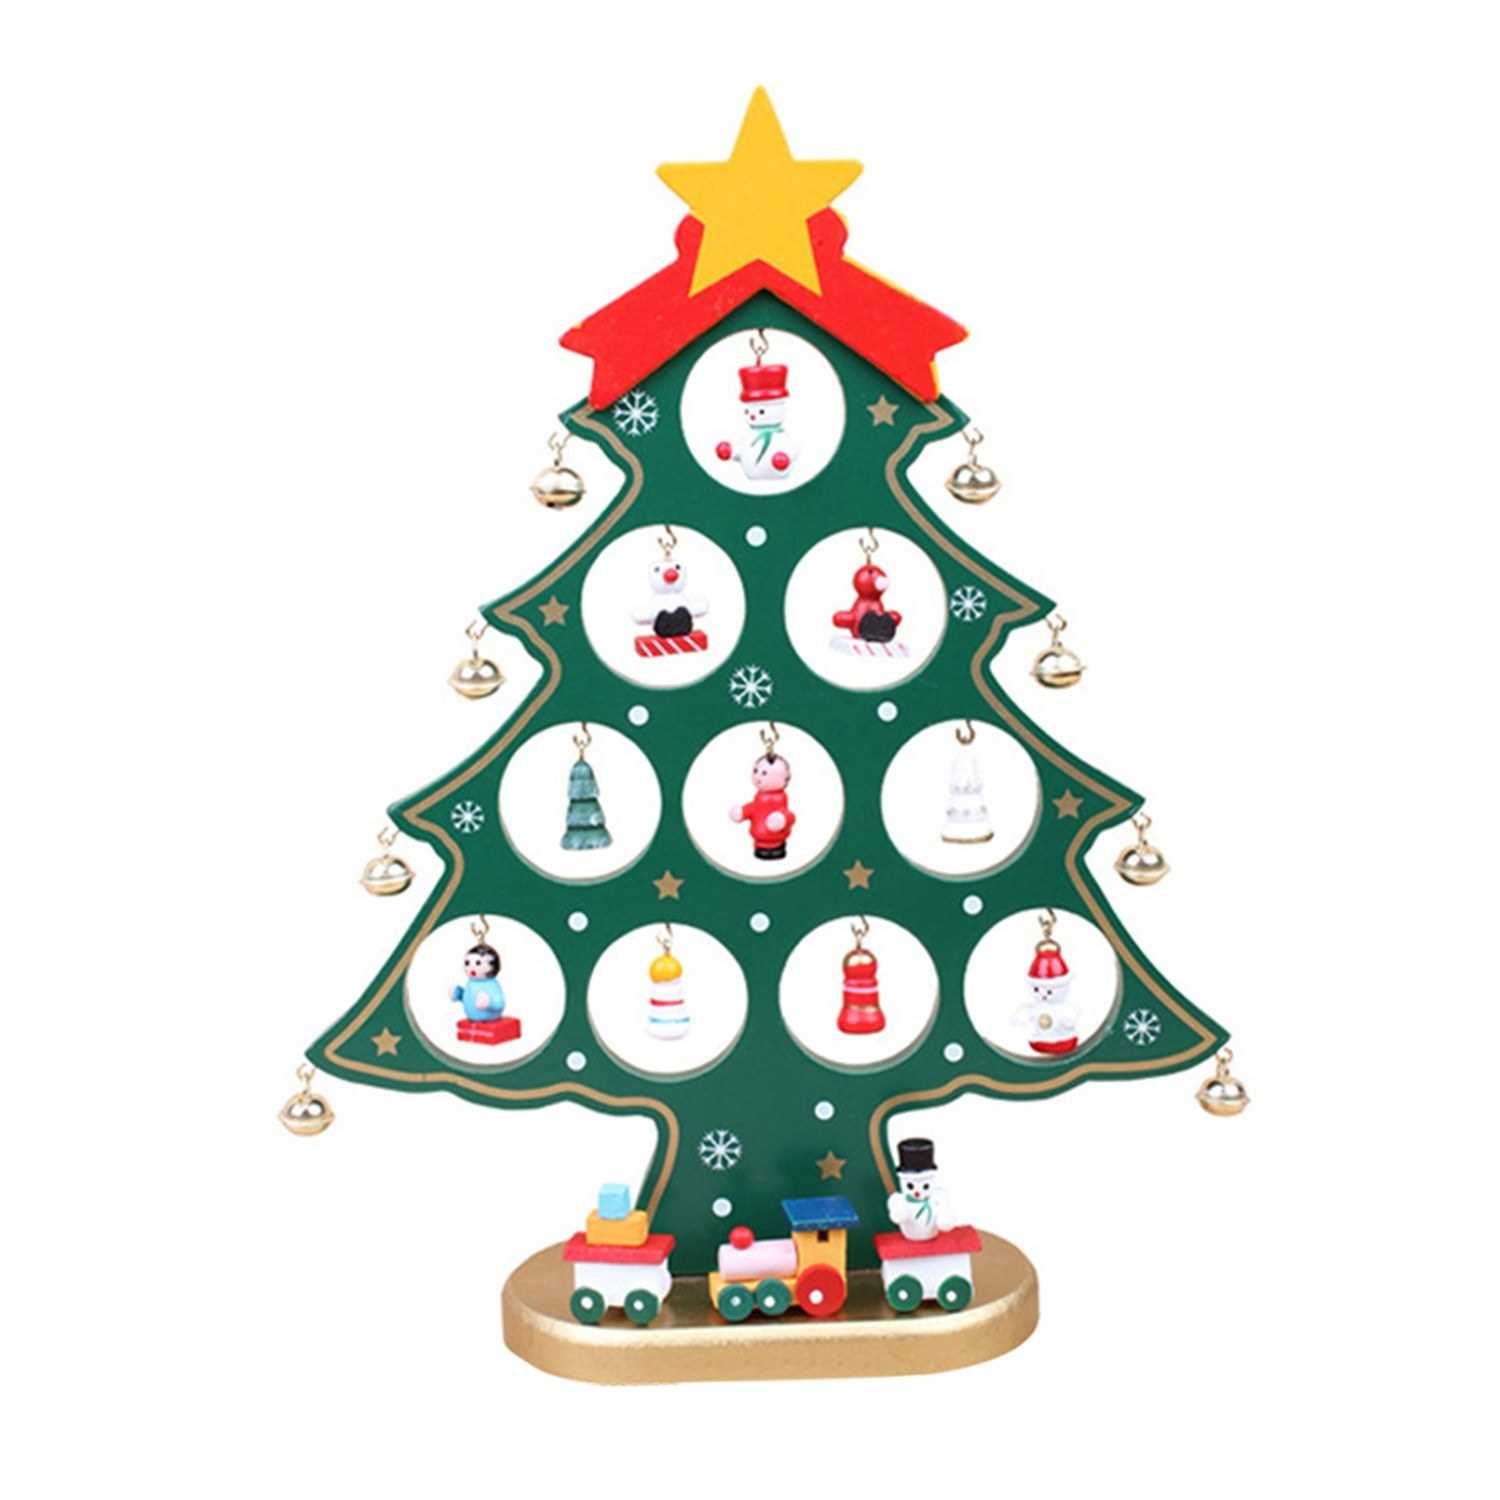 10 62 Inch Christmas Tree With Hanging Decorations Decorative Wooden Xmas Tree Hanging Ornaments For Indoor Outdoor Garden Patio Backyard Party Decor Green